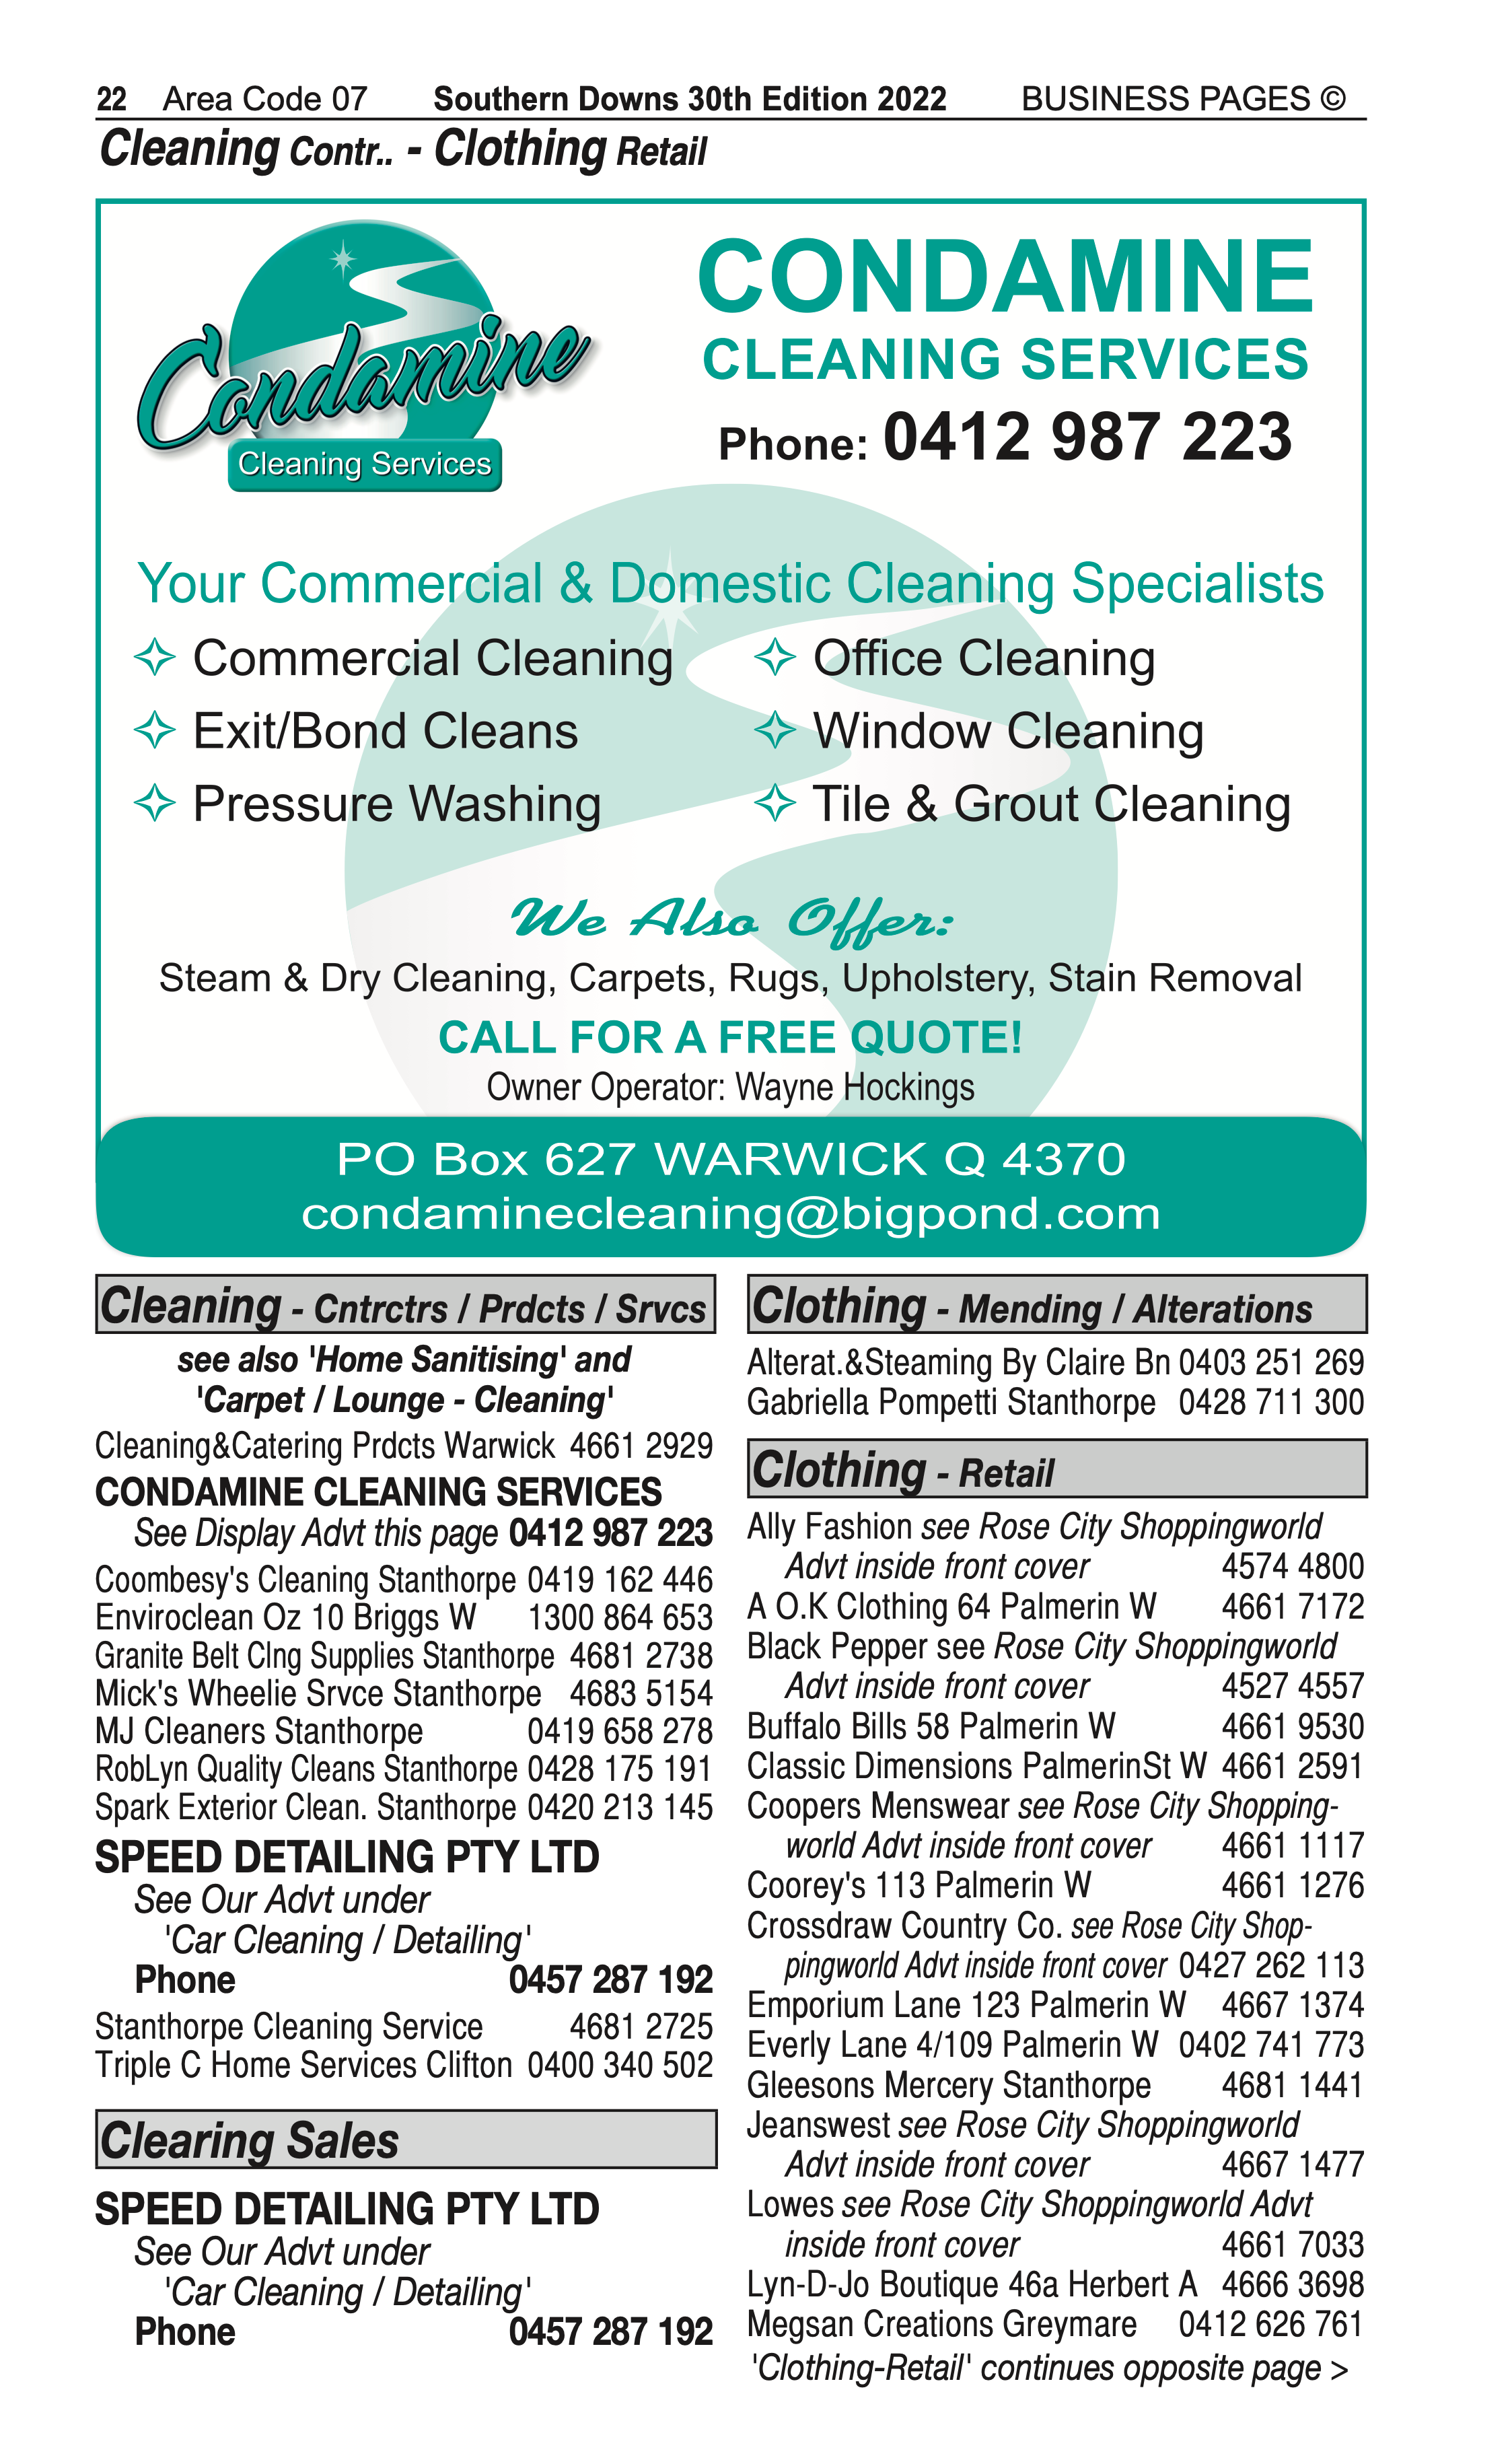 Andersens Carpets | Blinds & Awnings in Warwick | PBezy Pocket Books local directories - page 22